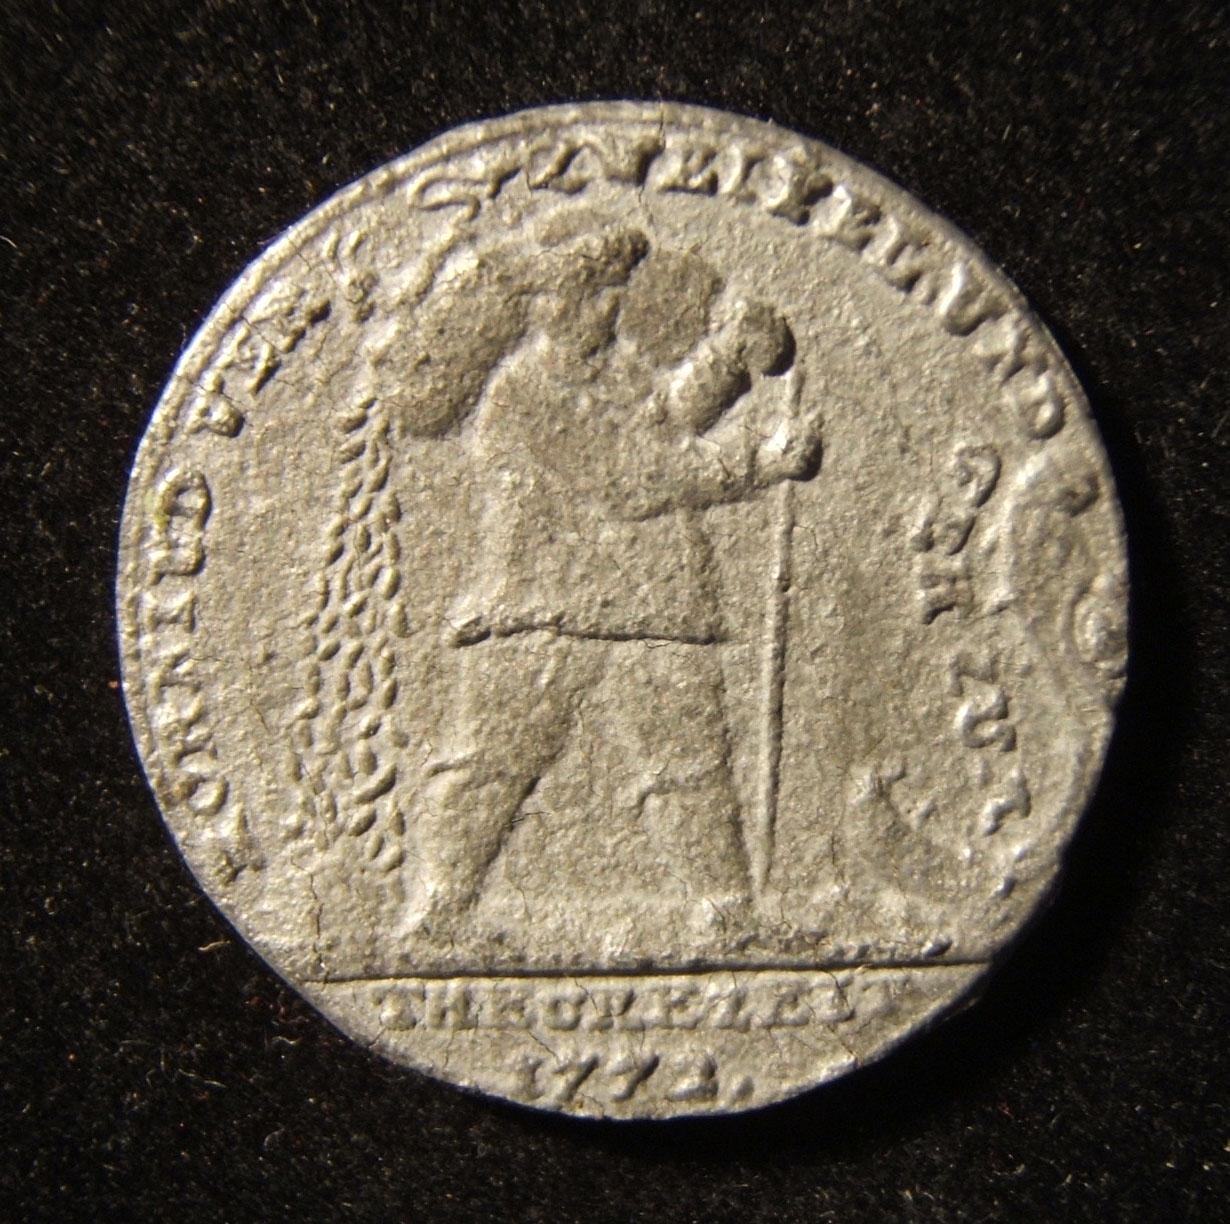 Germany: Kornjude jeton, 1772, by Johann Christian Reich; in pewter; 30mm, 6.75g; obv: Jewish grain peddler to right, open jaws of allegator & leg.